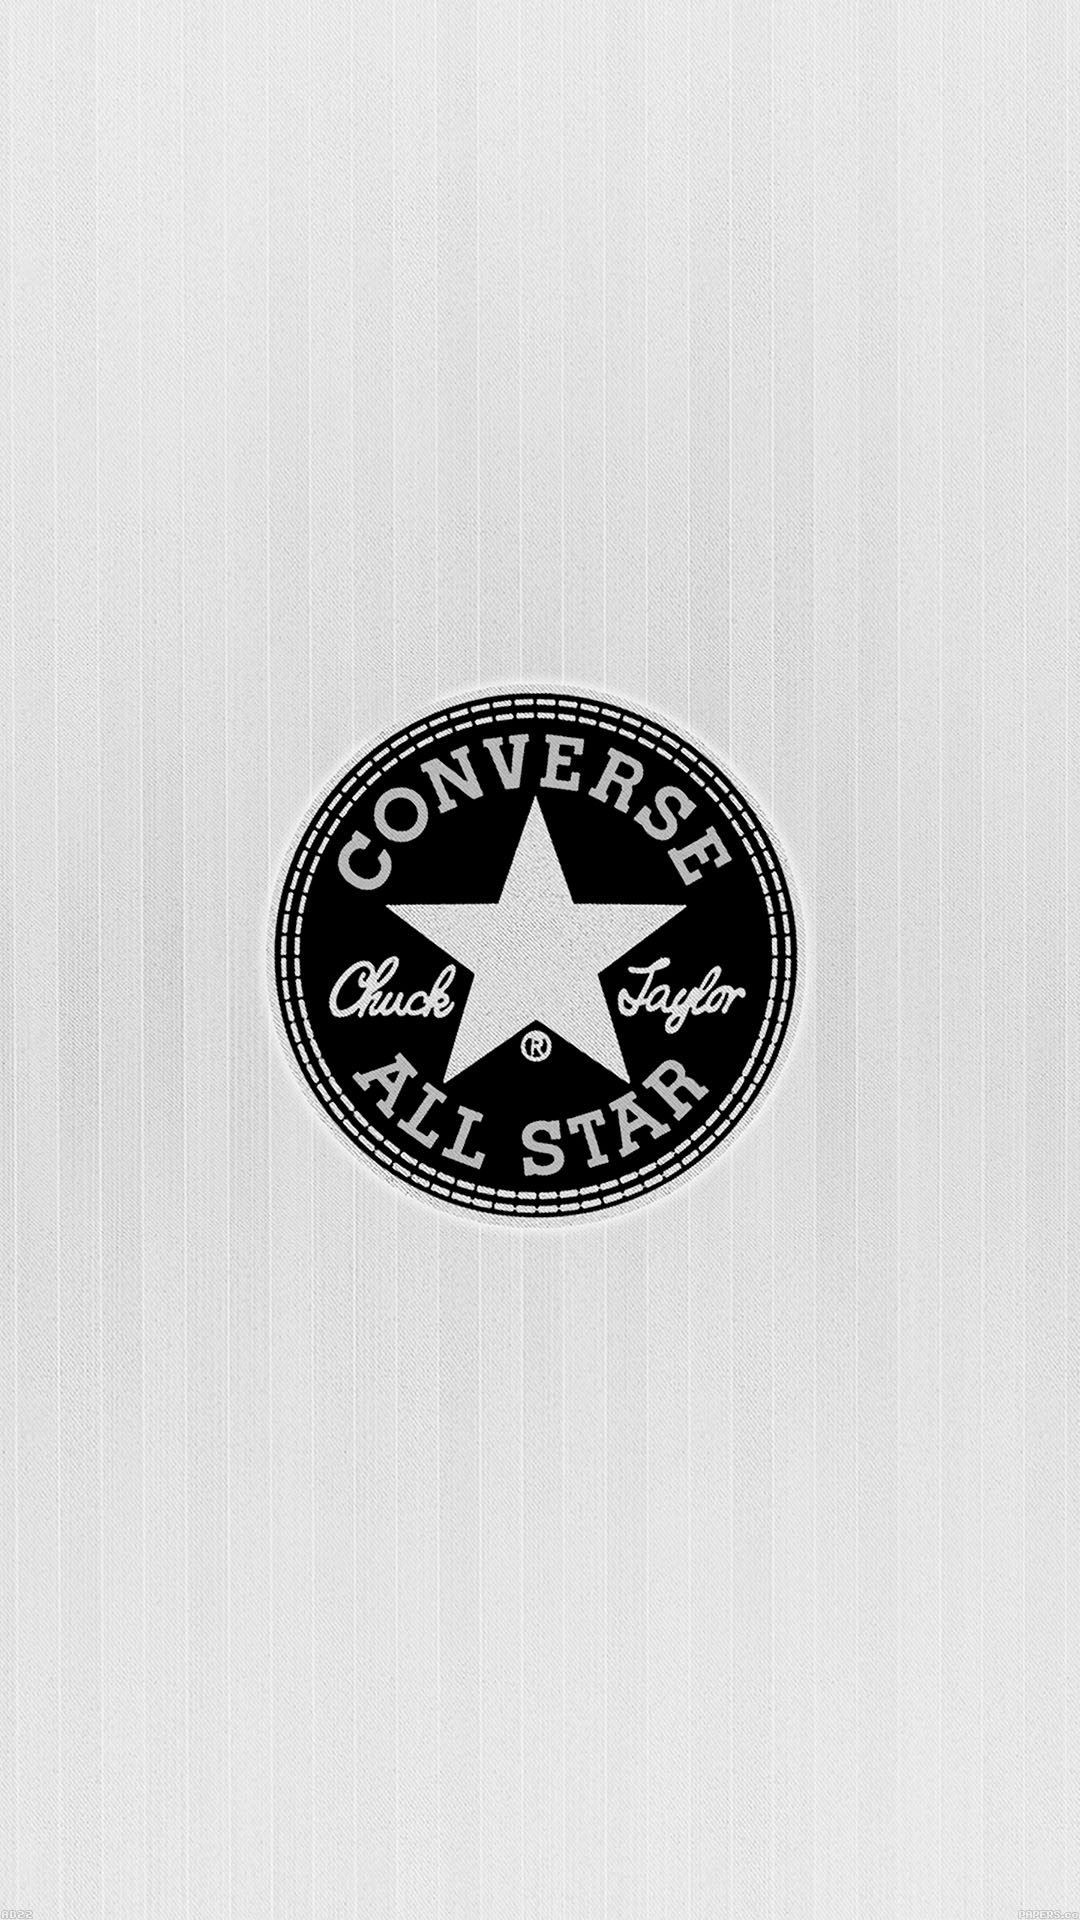 converse iphone 6 wallpaper